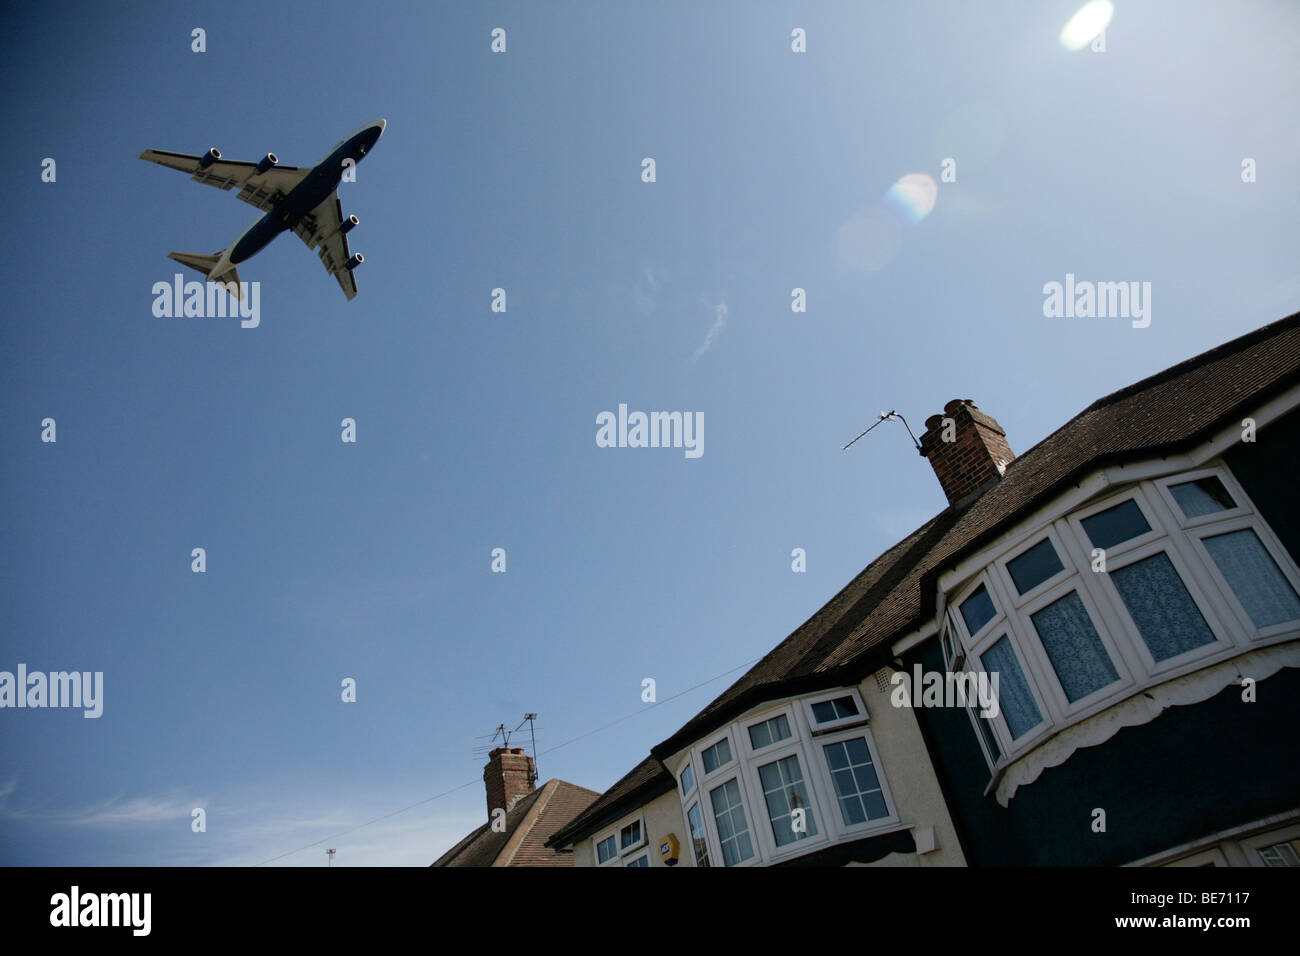 Avion survolant maison près de l'aéroport de Heathrow Photo Stock